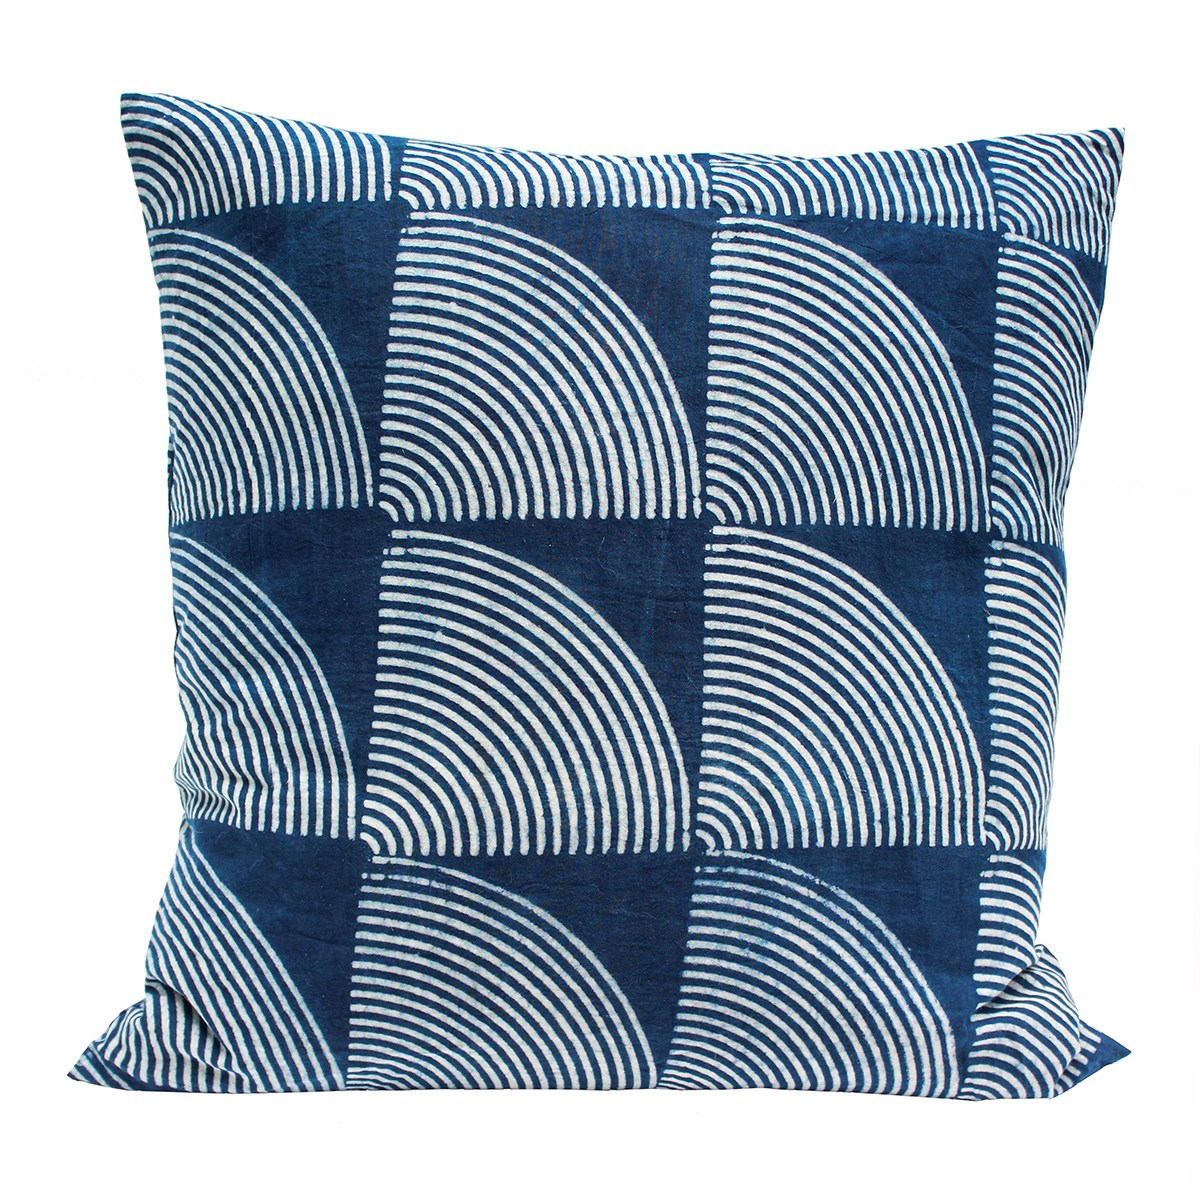 Indigo and blue dyed pillow